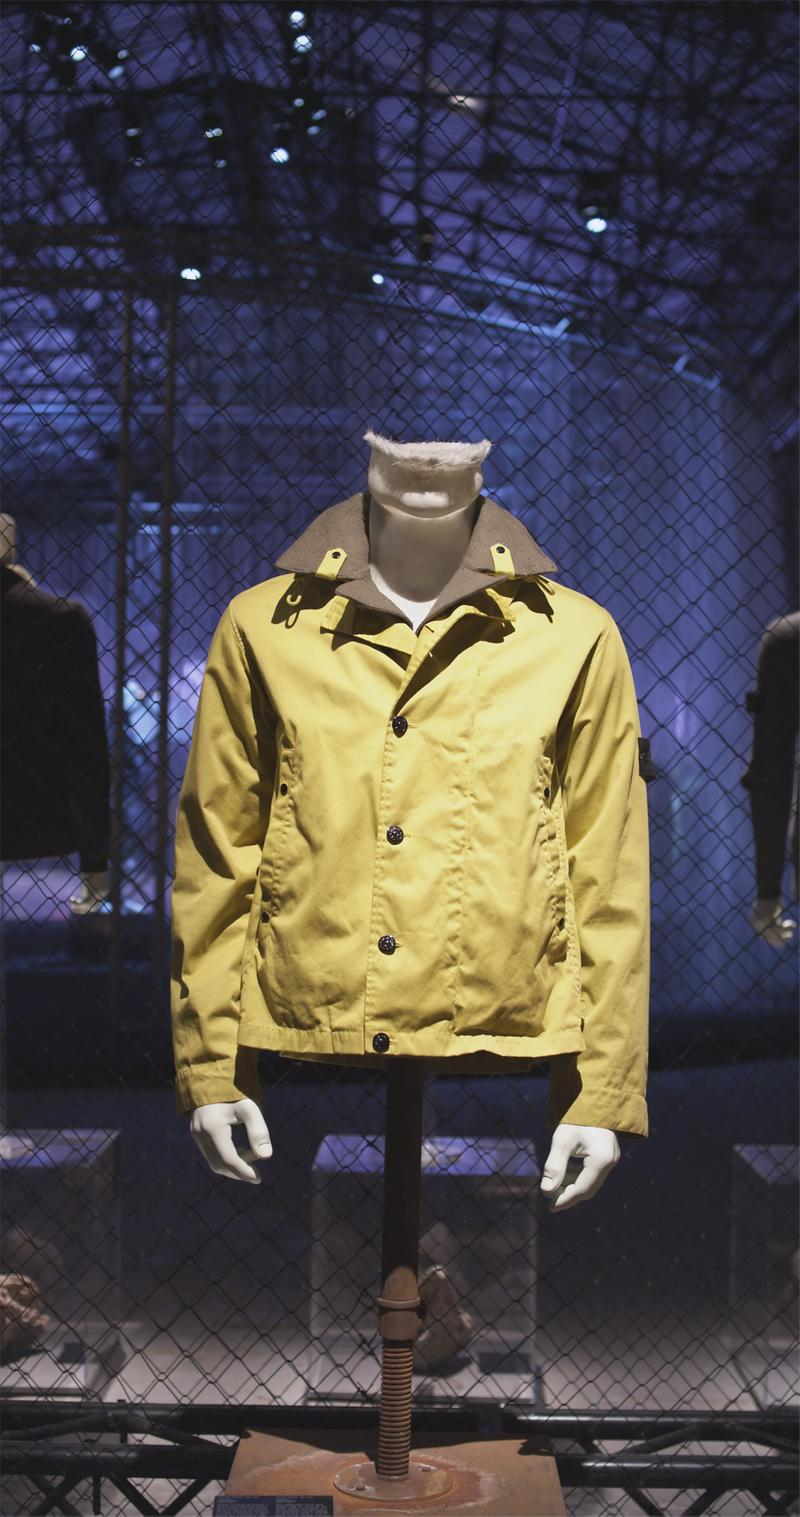 Yellow buttoned jacket with wide collar and Stone Island badge on upper left sleeve displayed on mannequin bust against chain link fence